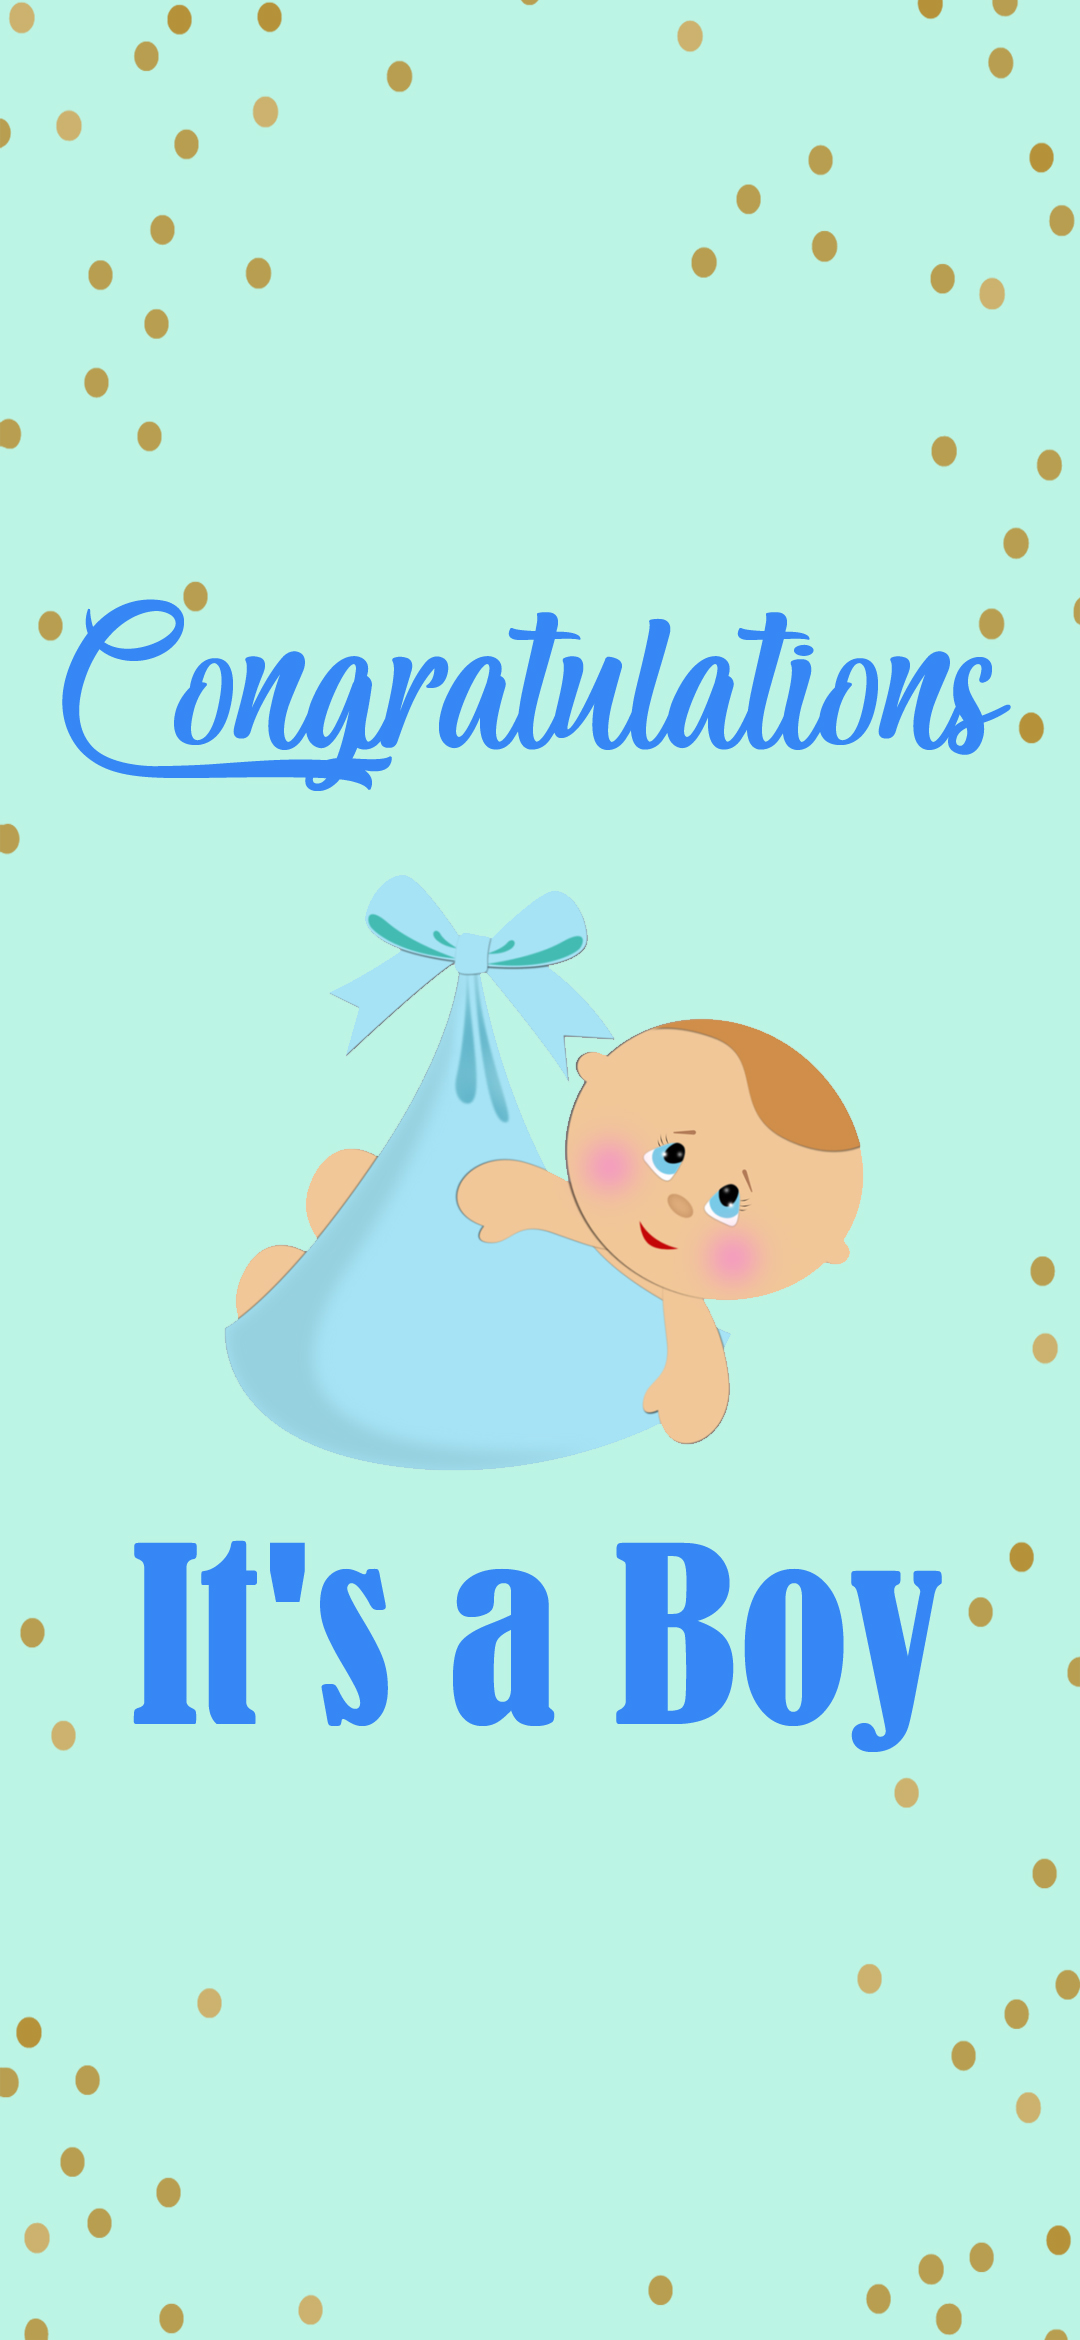 Congratulations Images Free Download for New Born Baby Boy